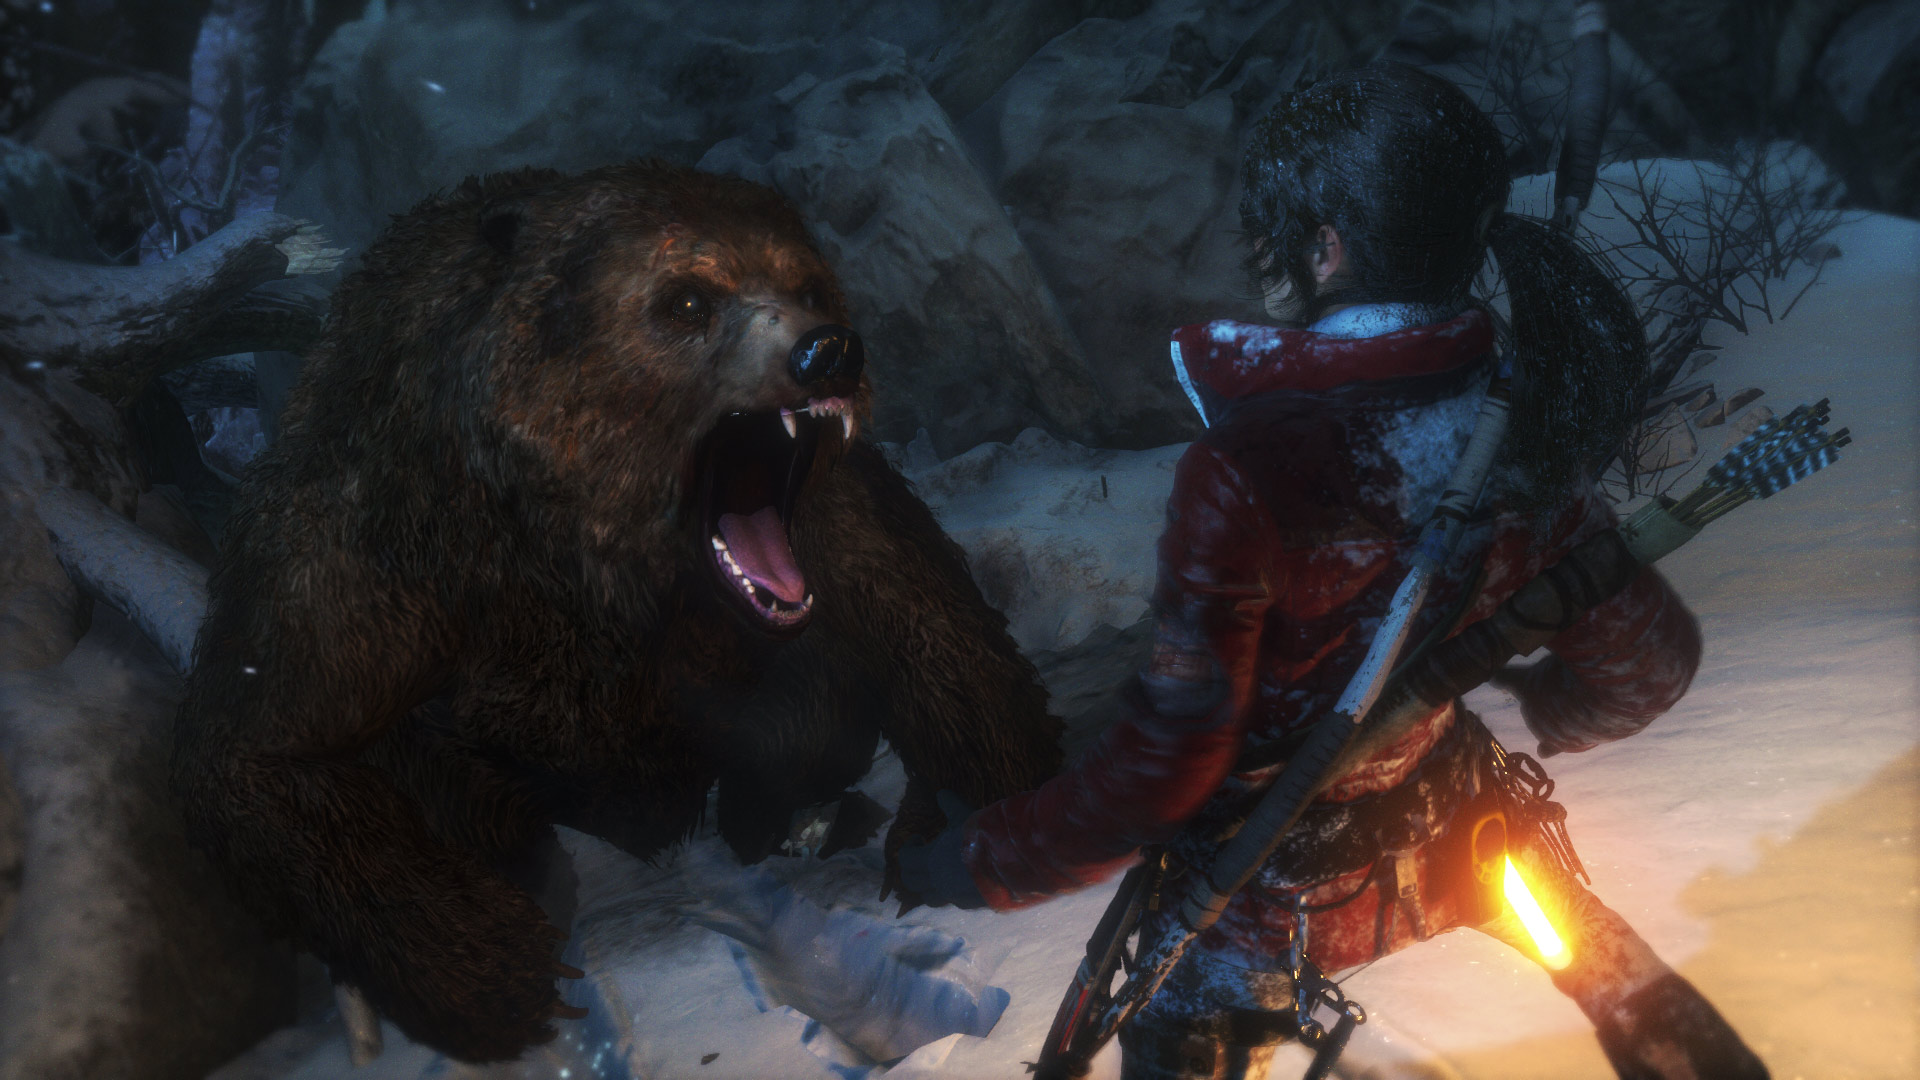 Rise of the Tomb Raider image 2